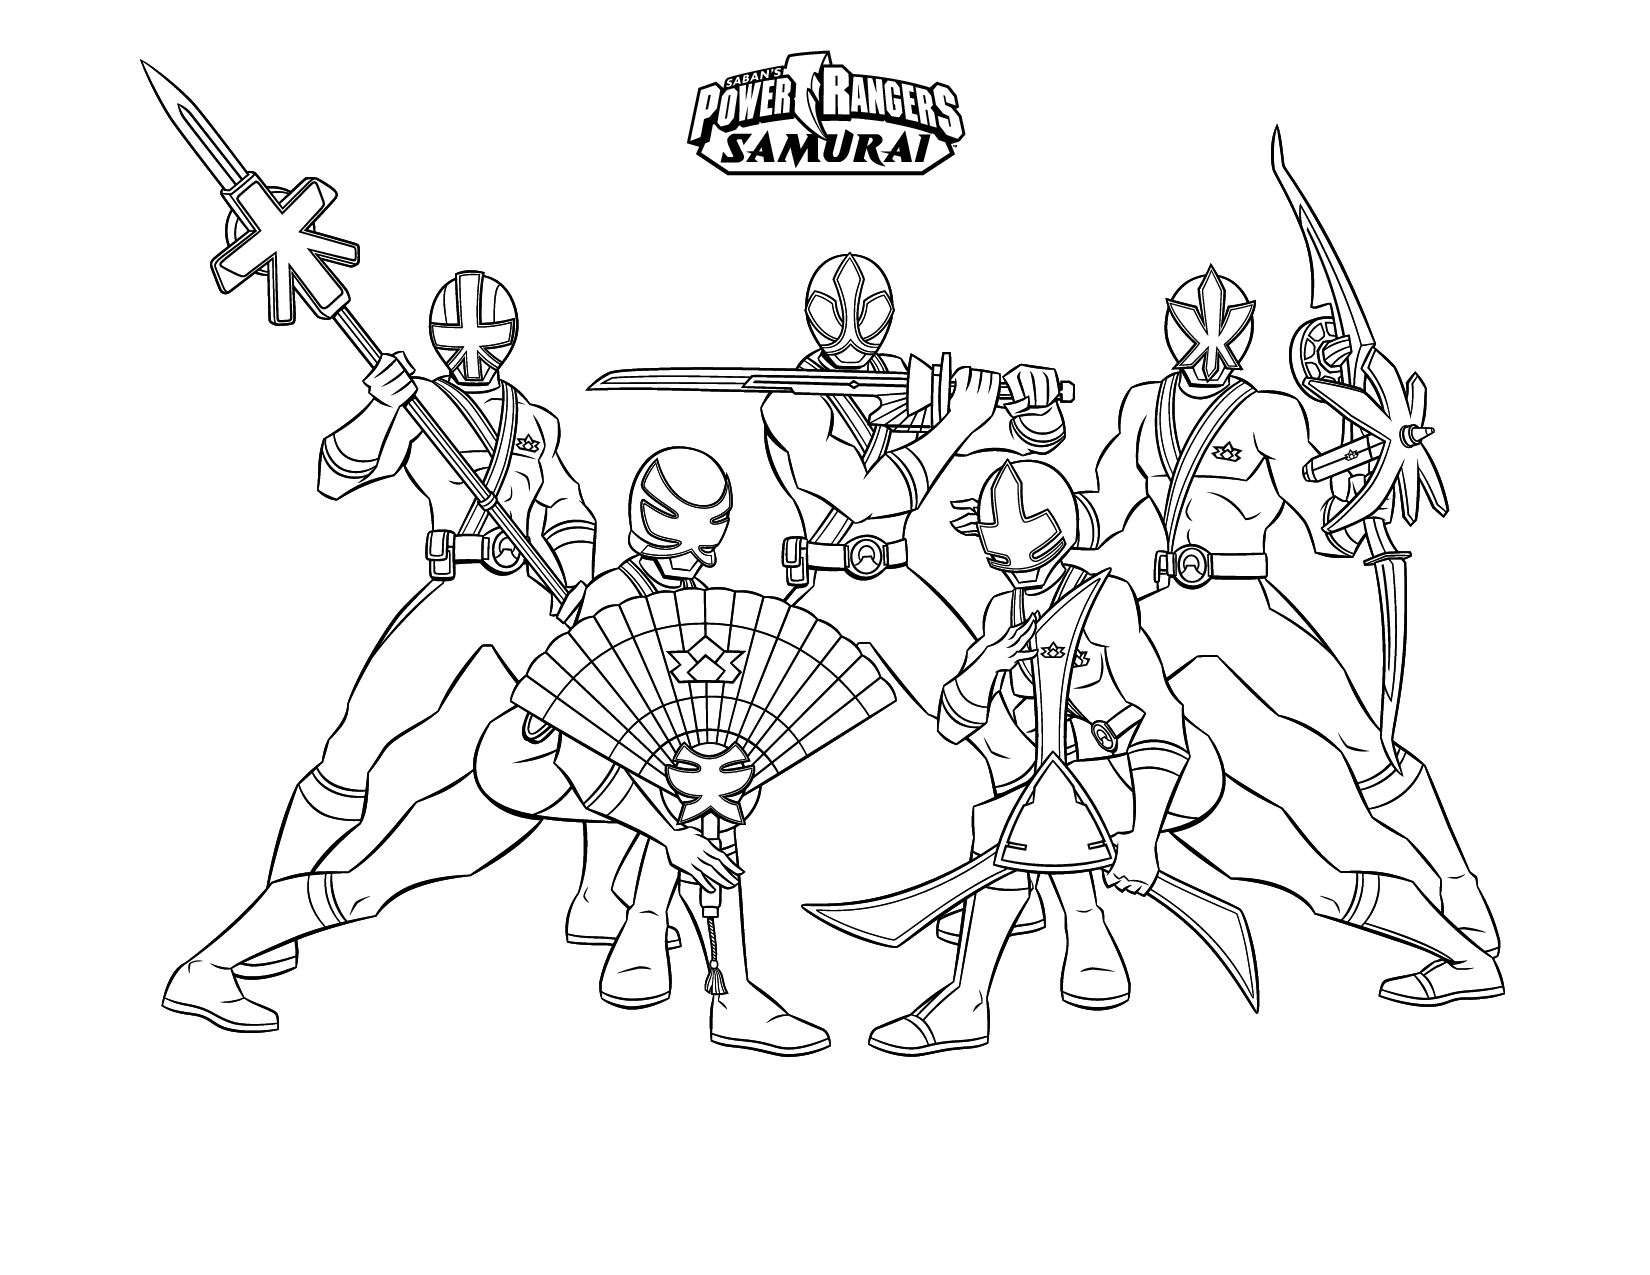 1650x1275 New Beautiful Simple Samurai Power Rangers Coloring Pages For Boys